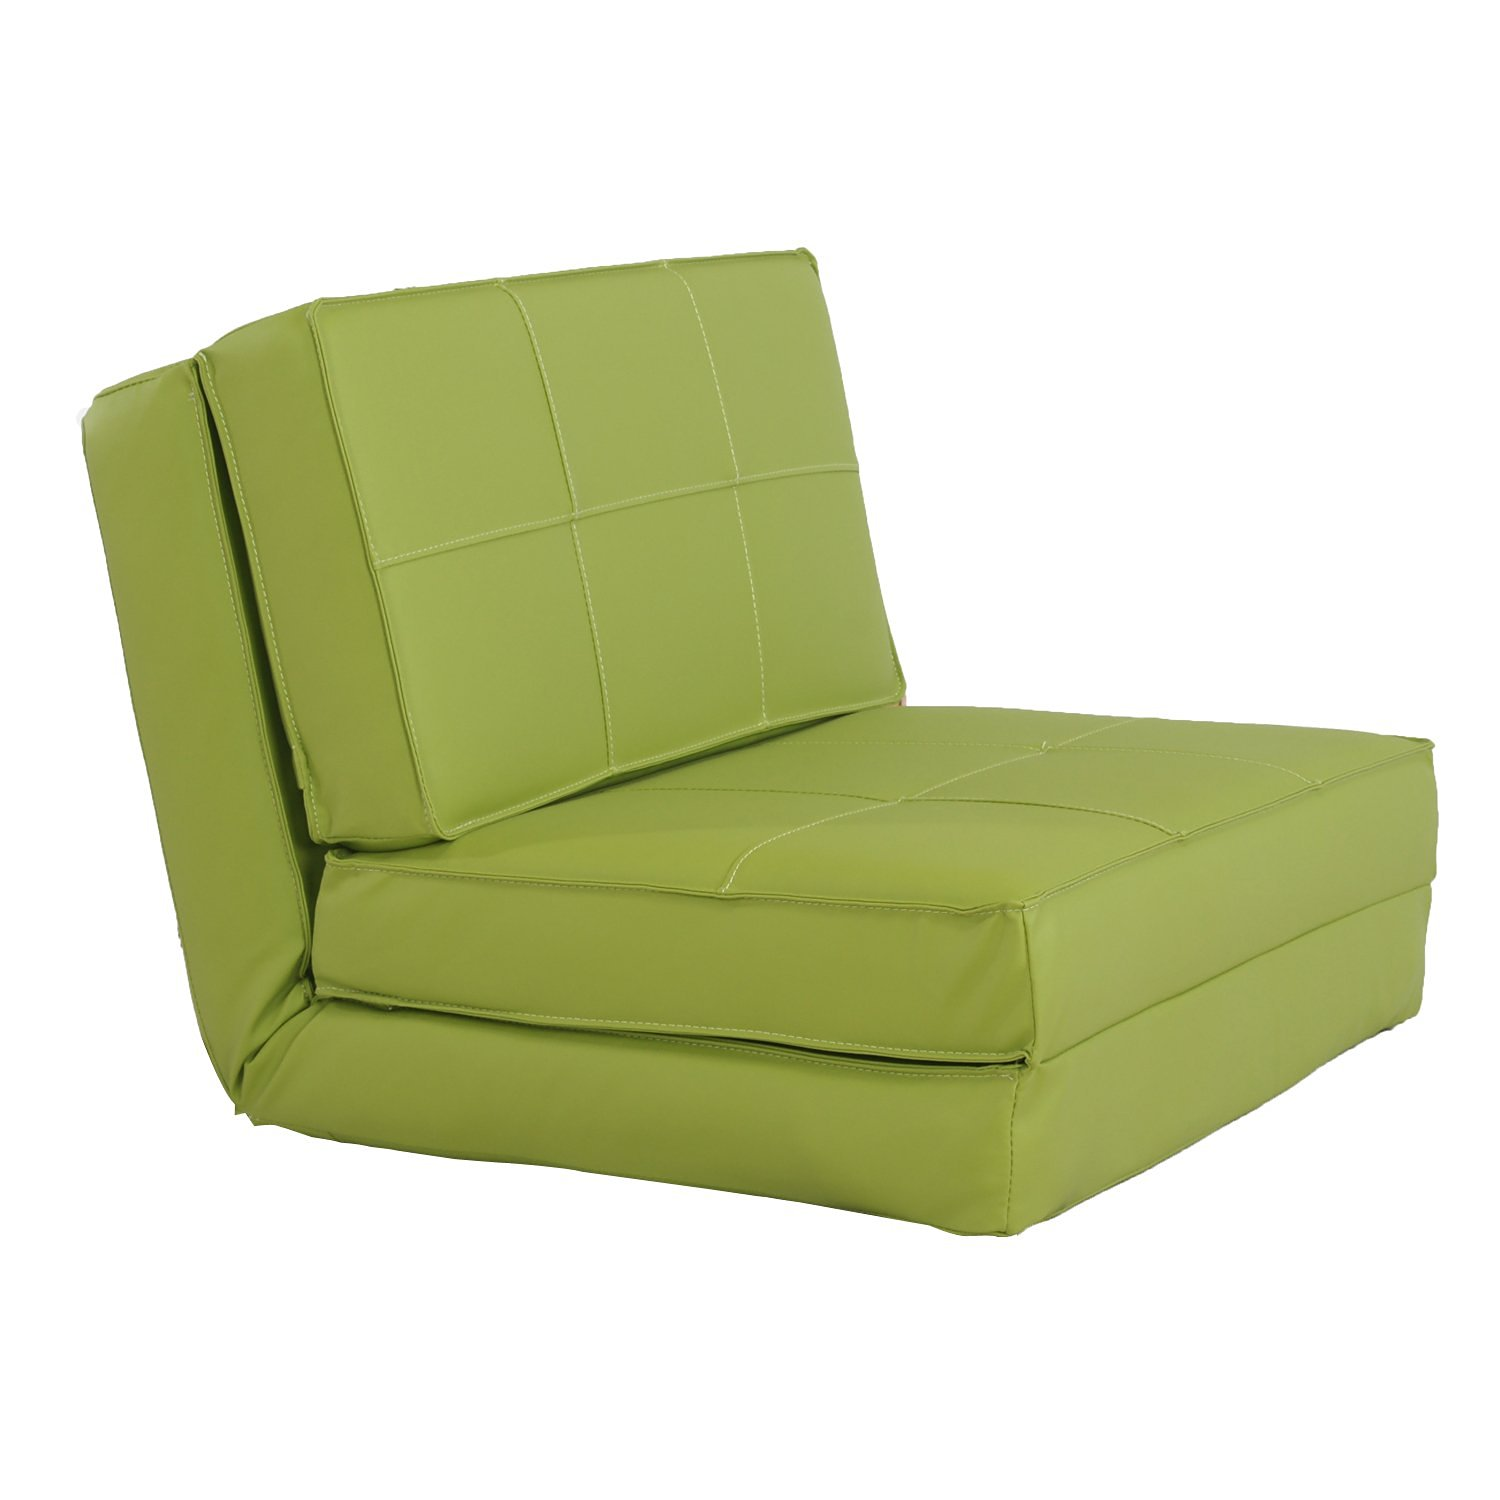 Magnificent Cheap Lime Green Sofa Bed Find Lime Green Sofa Bed Deals On Caraccident5 Cool Chair Designs And Ideas Caraccident5Info